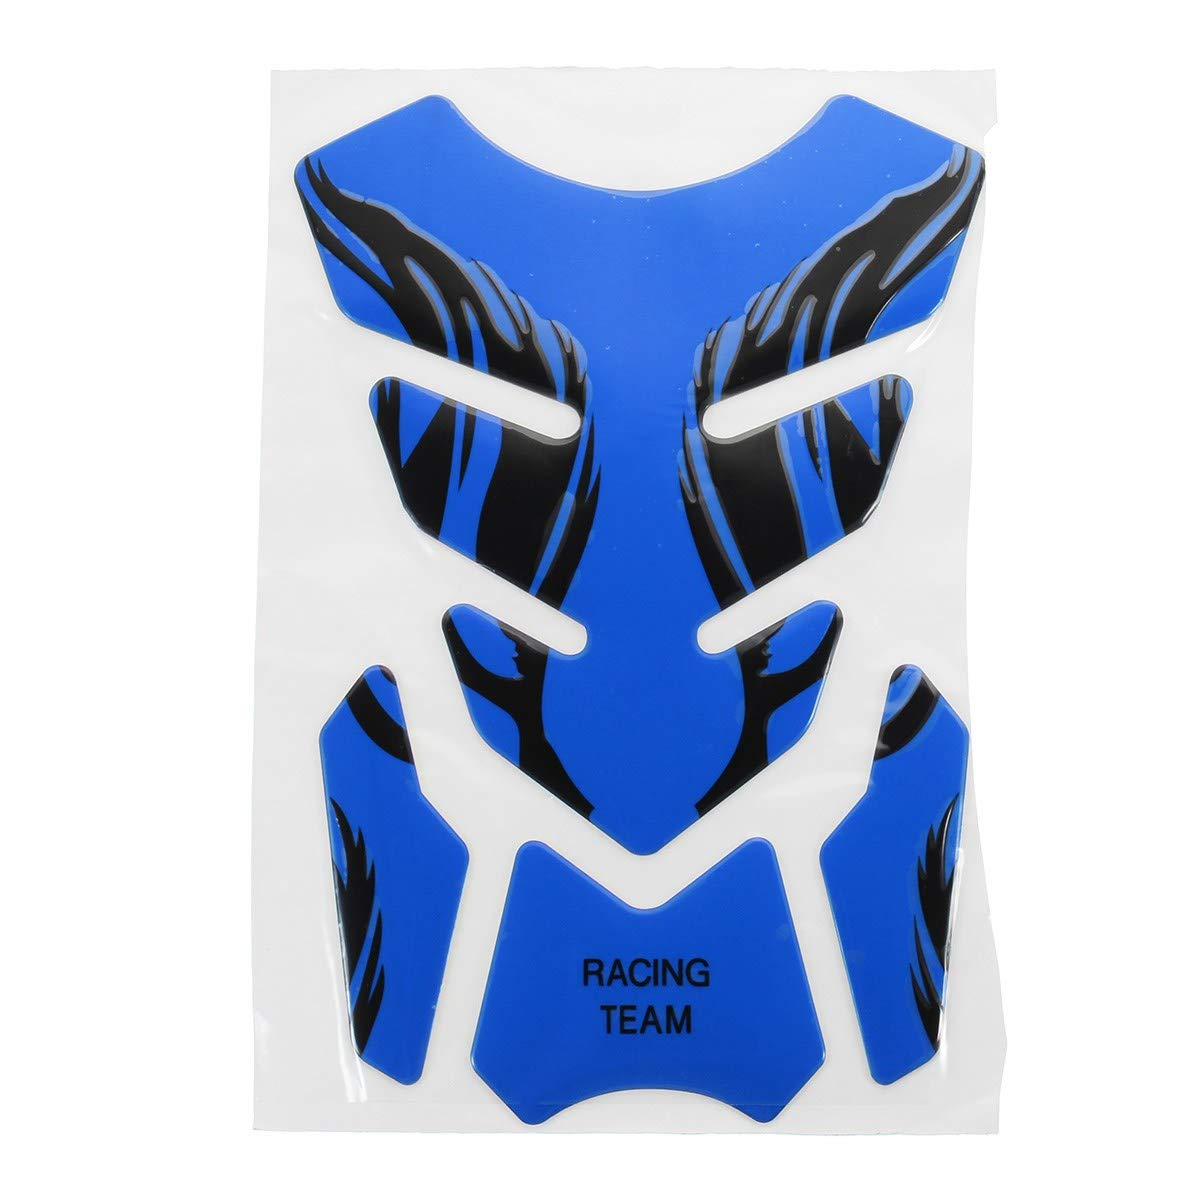 Blue 3D Motorcycle Universal Flame Fishbone Rubber Sticker Decals as Fuel Tank Pad Protector Cover